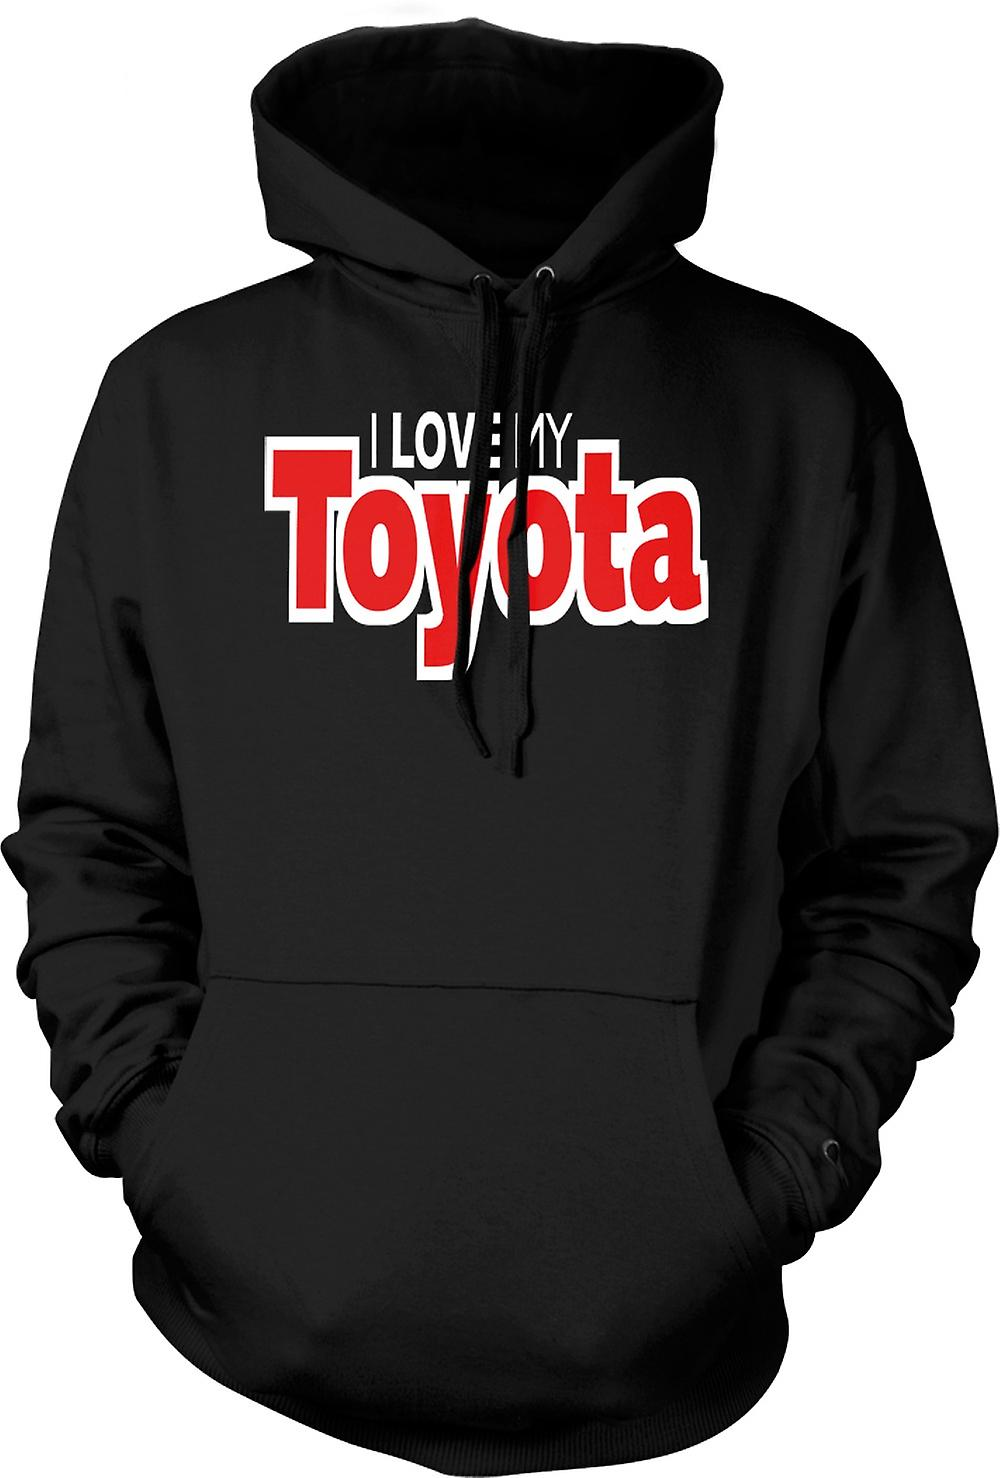 Kids Hoodie - I Love My Toyota - Car Enthusiast